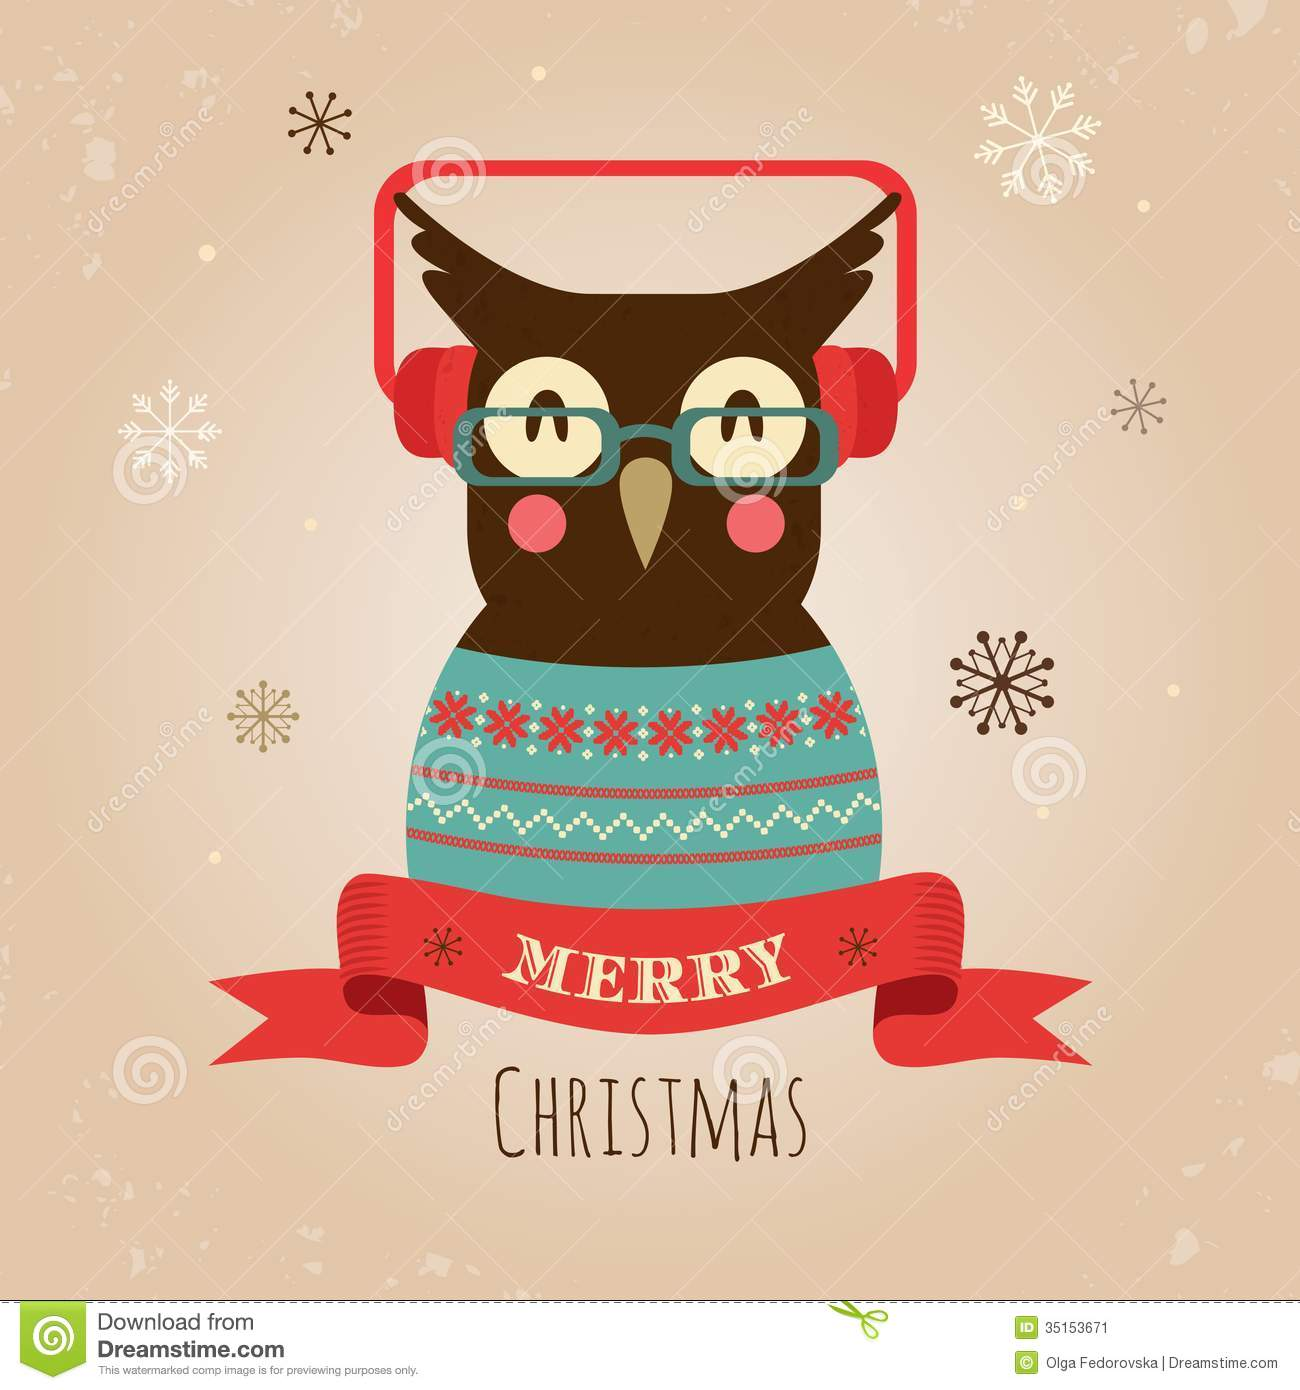 Vector Illustration Of Owl, Merry Christmas Card Stock Vector ...